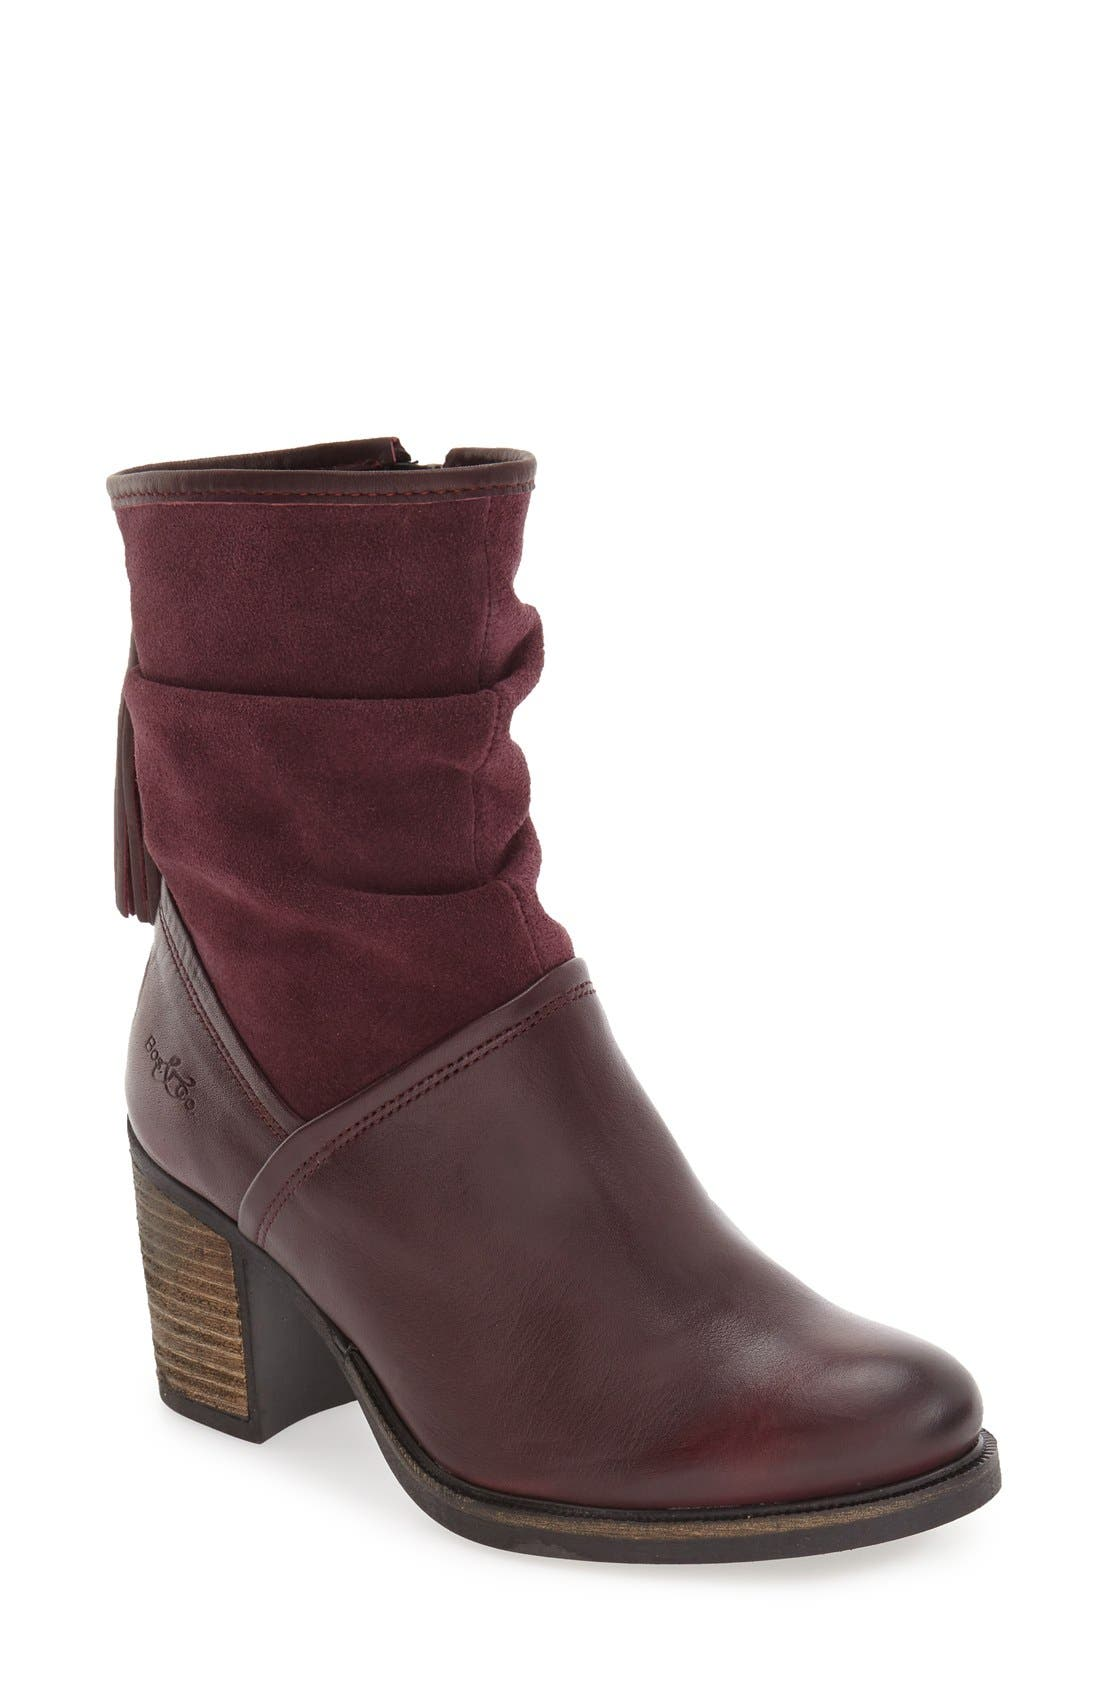 Bos. & Co. 'Bailee' Waterproof Boot (Women)